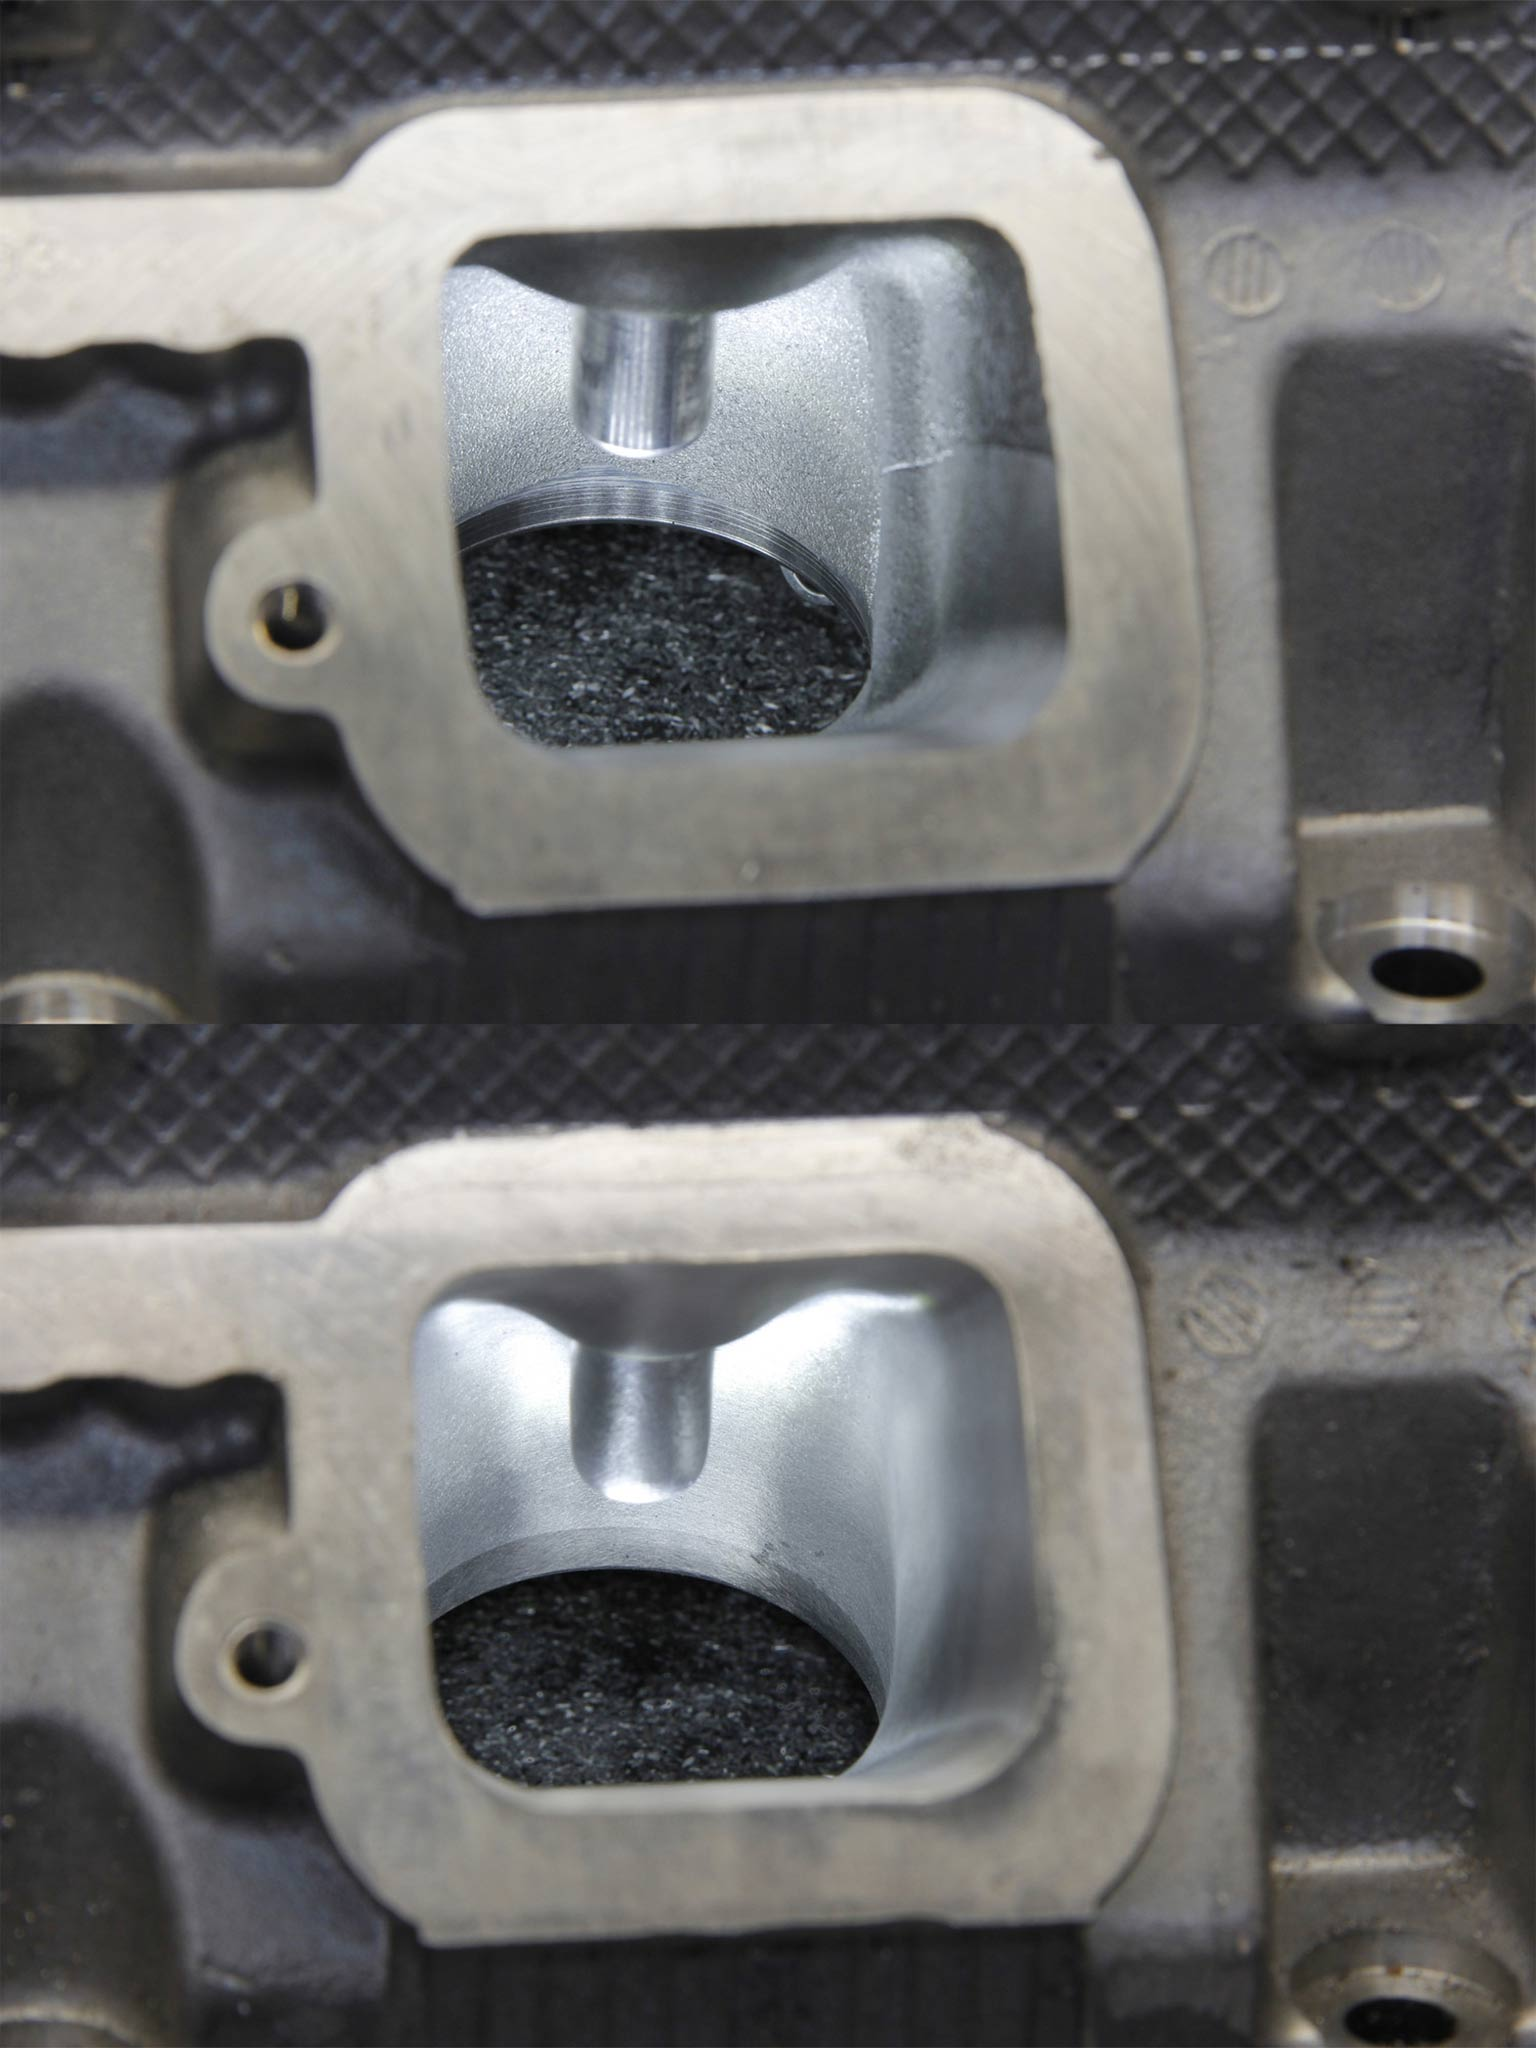 4. In this photo you can see the pushrod bump on the right that is cast into the head. Reducing it increases the volume inside the port without making the cross sectional area larger. This trick increases volume without reducing air velocity.